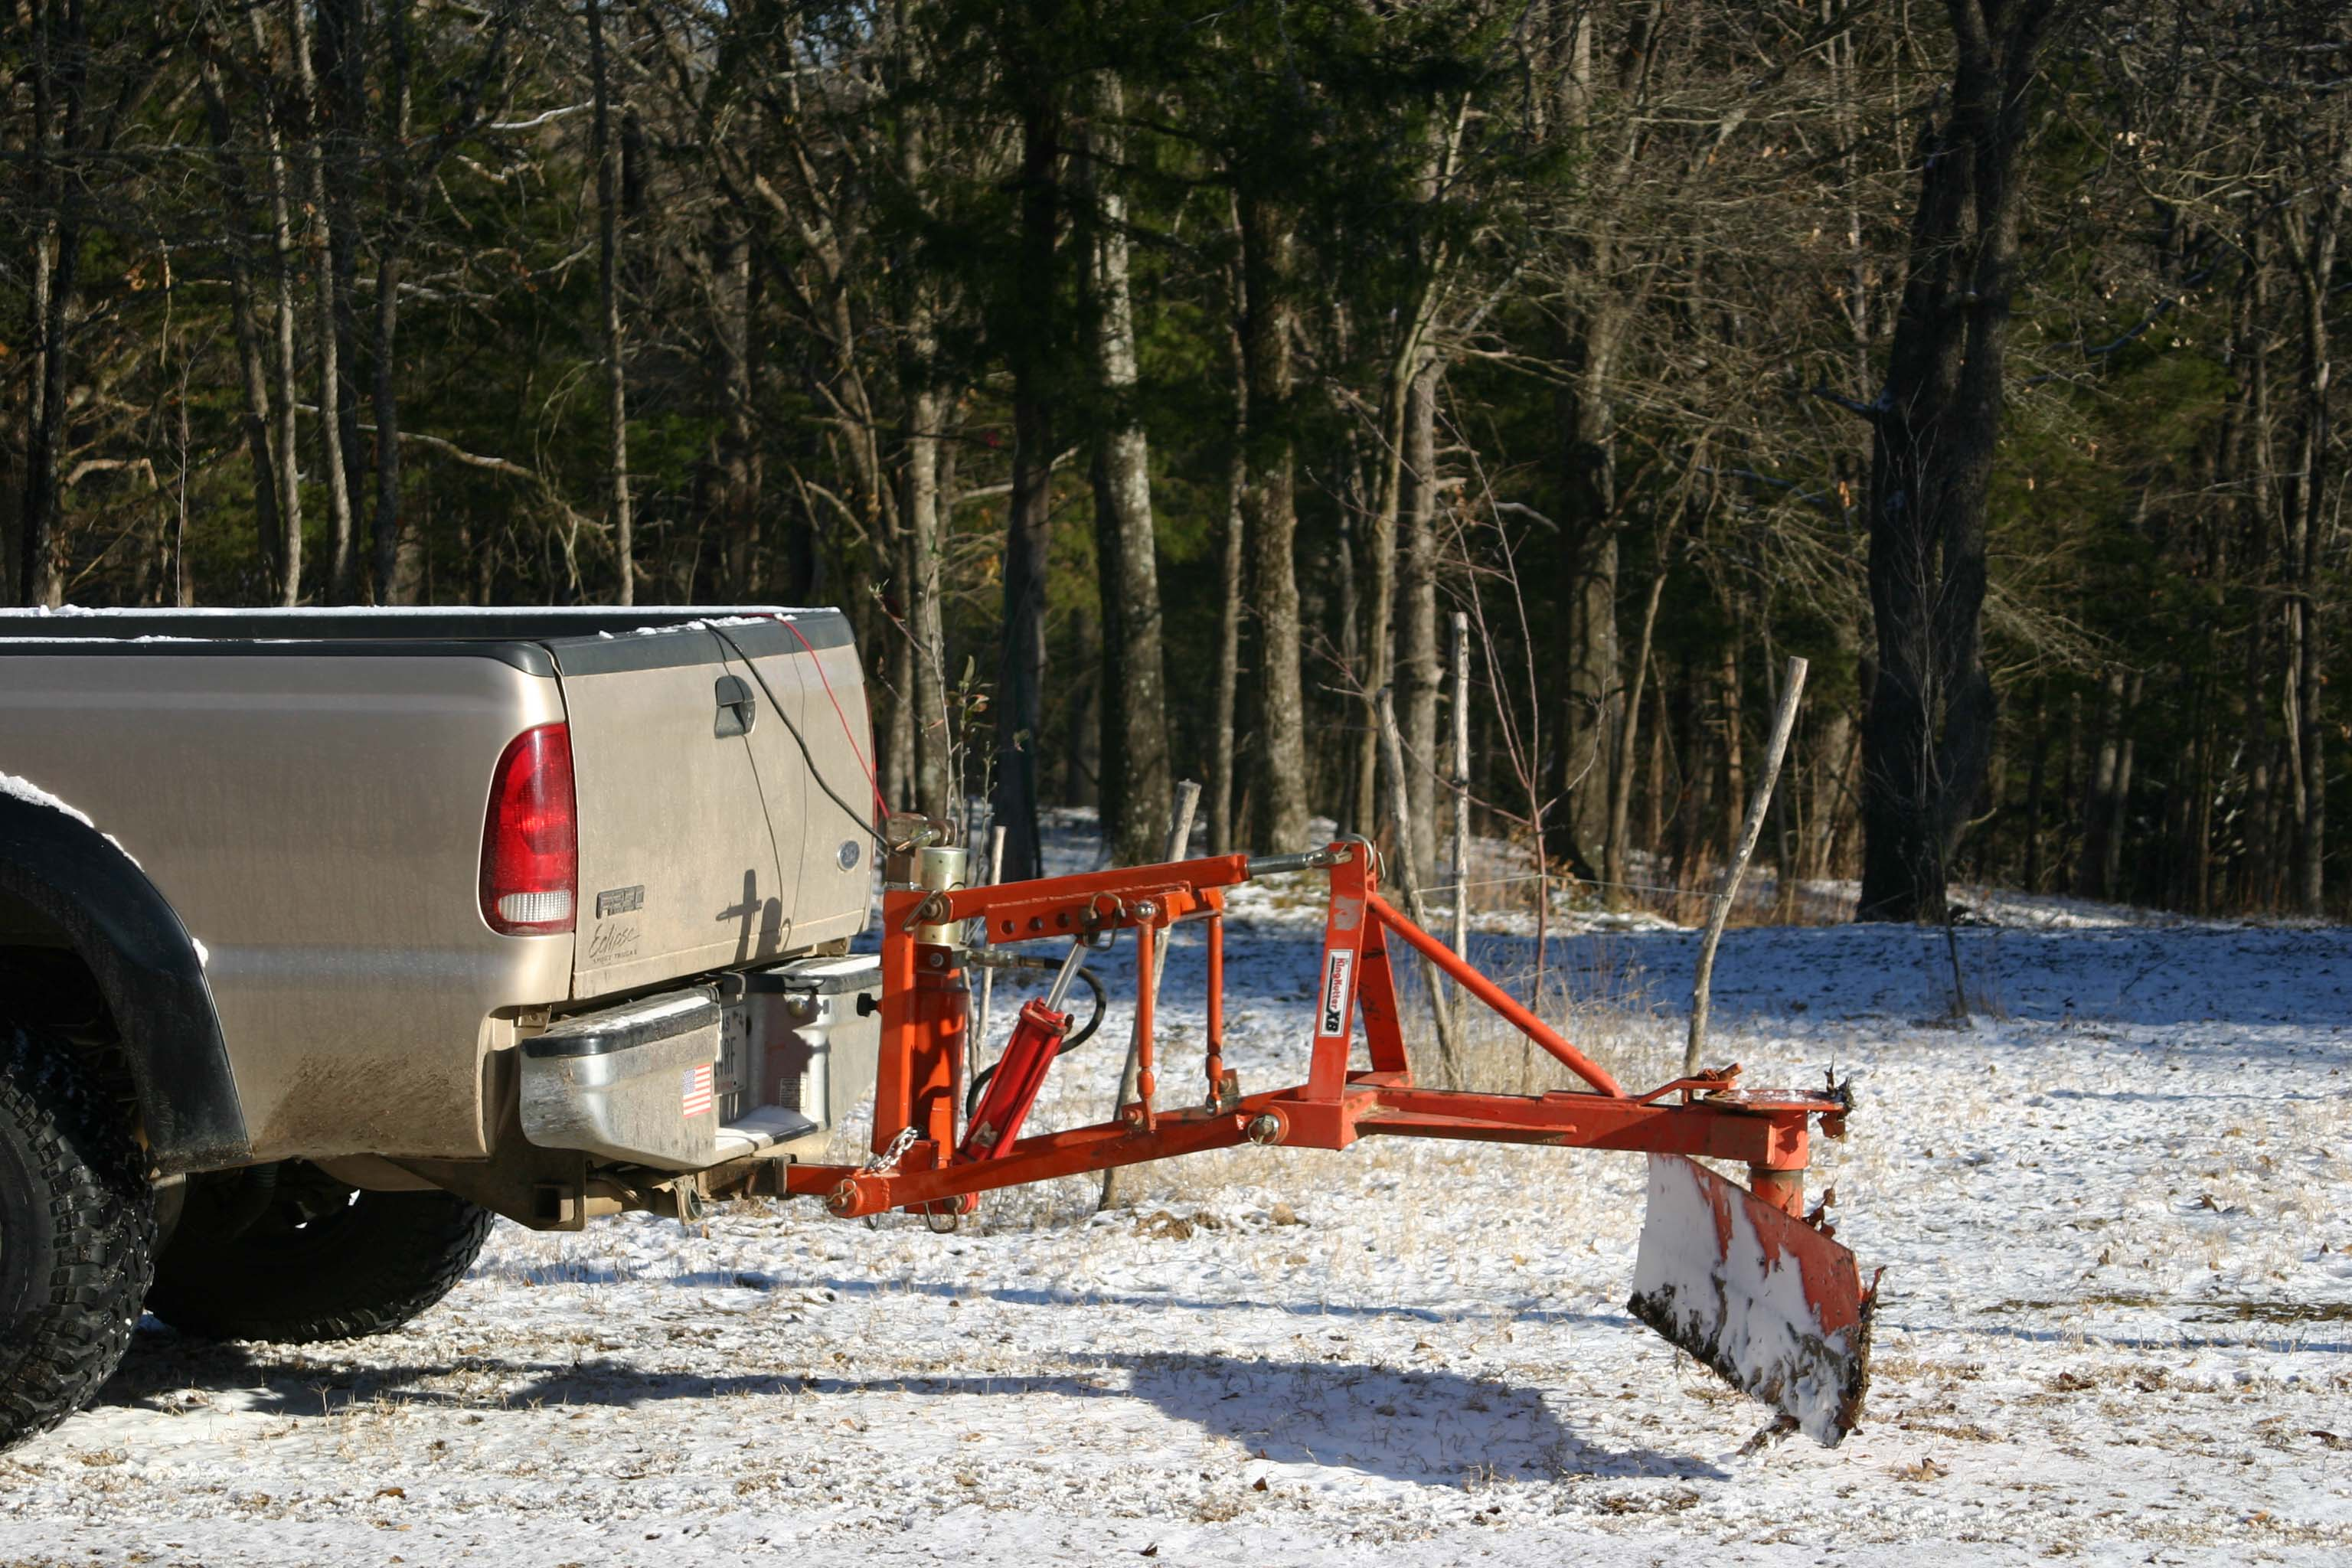 3 Point Hitch Truck : Vehicle three point hitch applications and photos